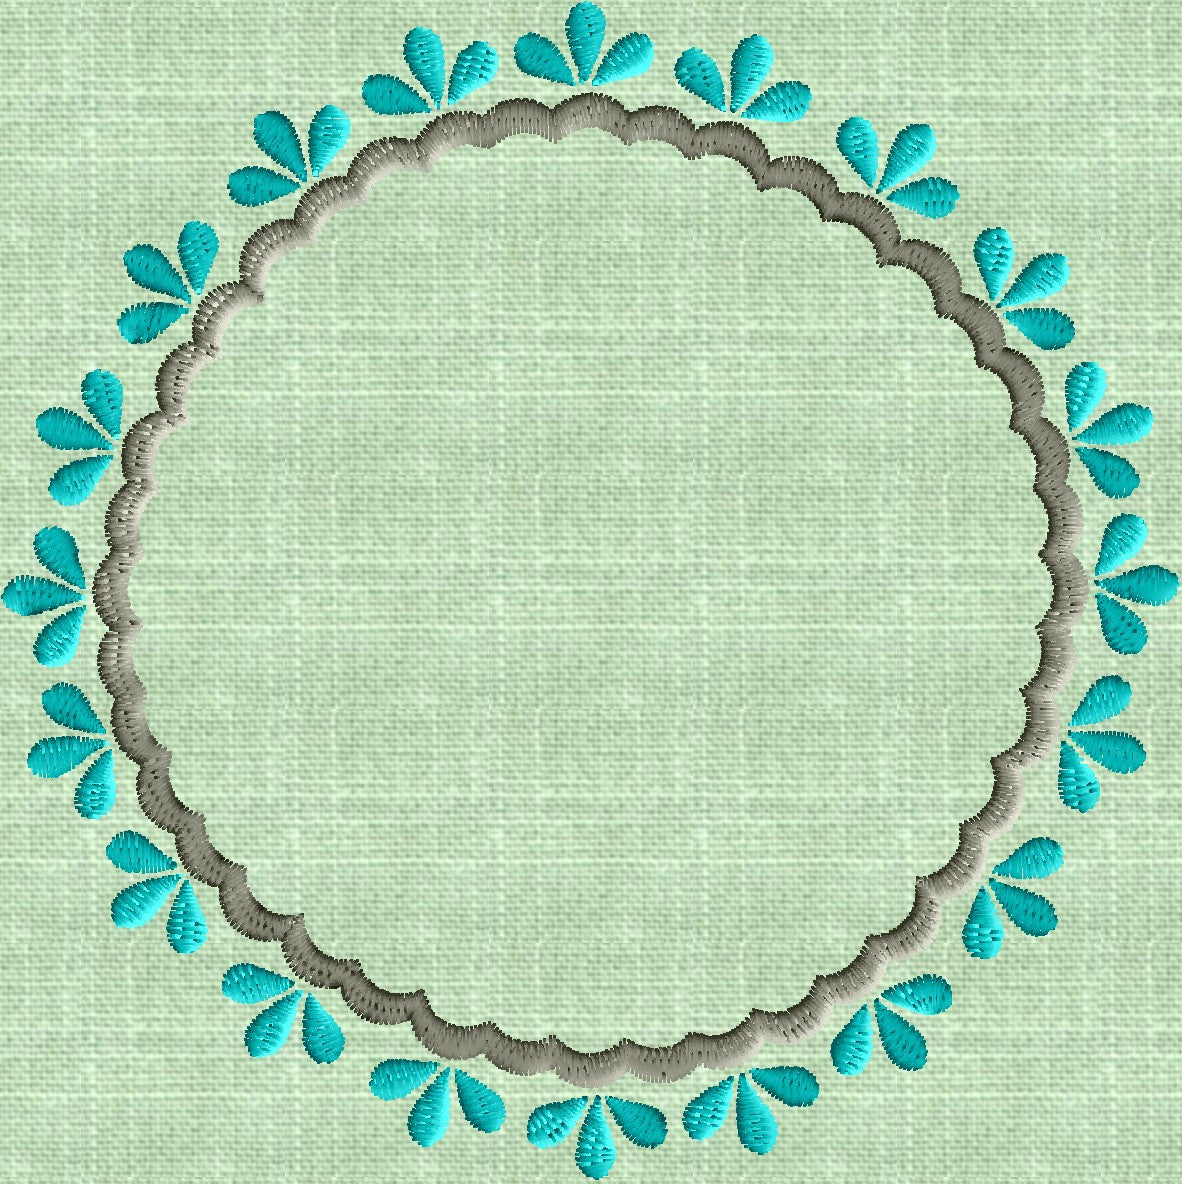 Hollys Round Font Frame Monogram Embroidery Design - Font not included - in 2 sizes - Instant download - Hus Dst Exp Vp3 Jef Pes formats